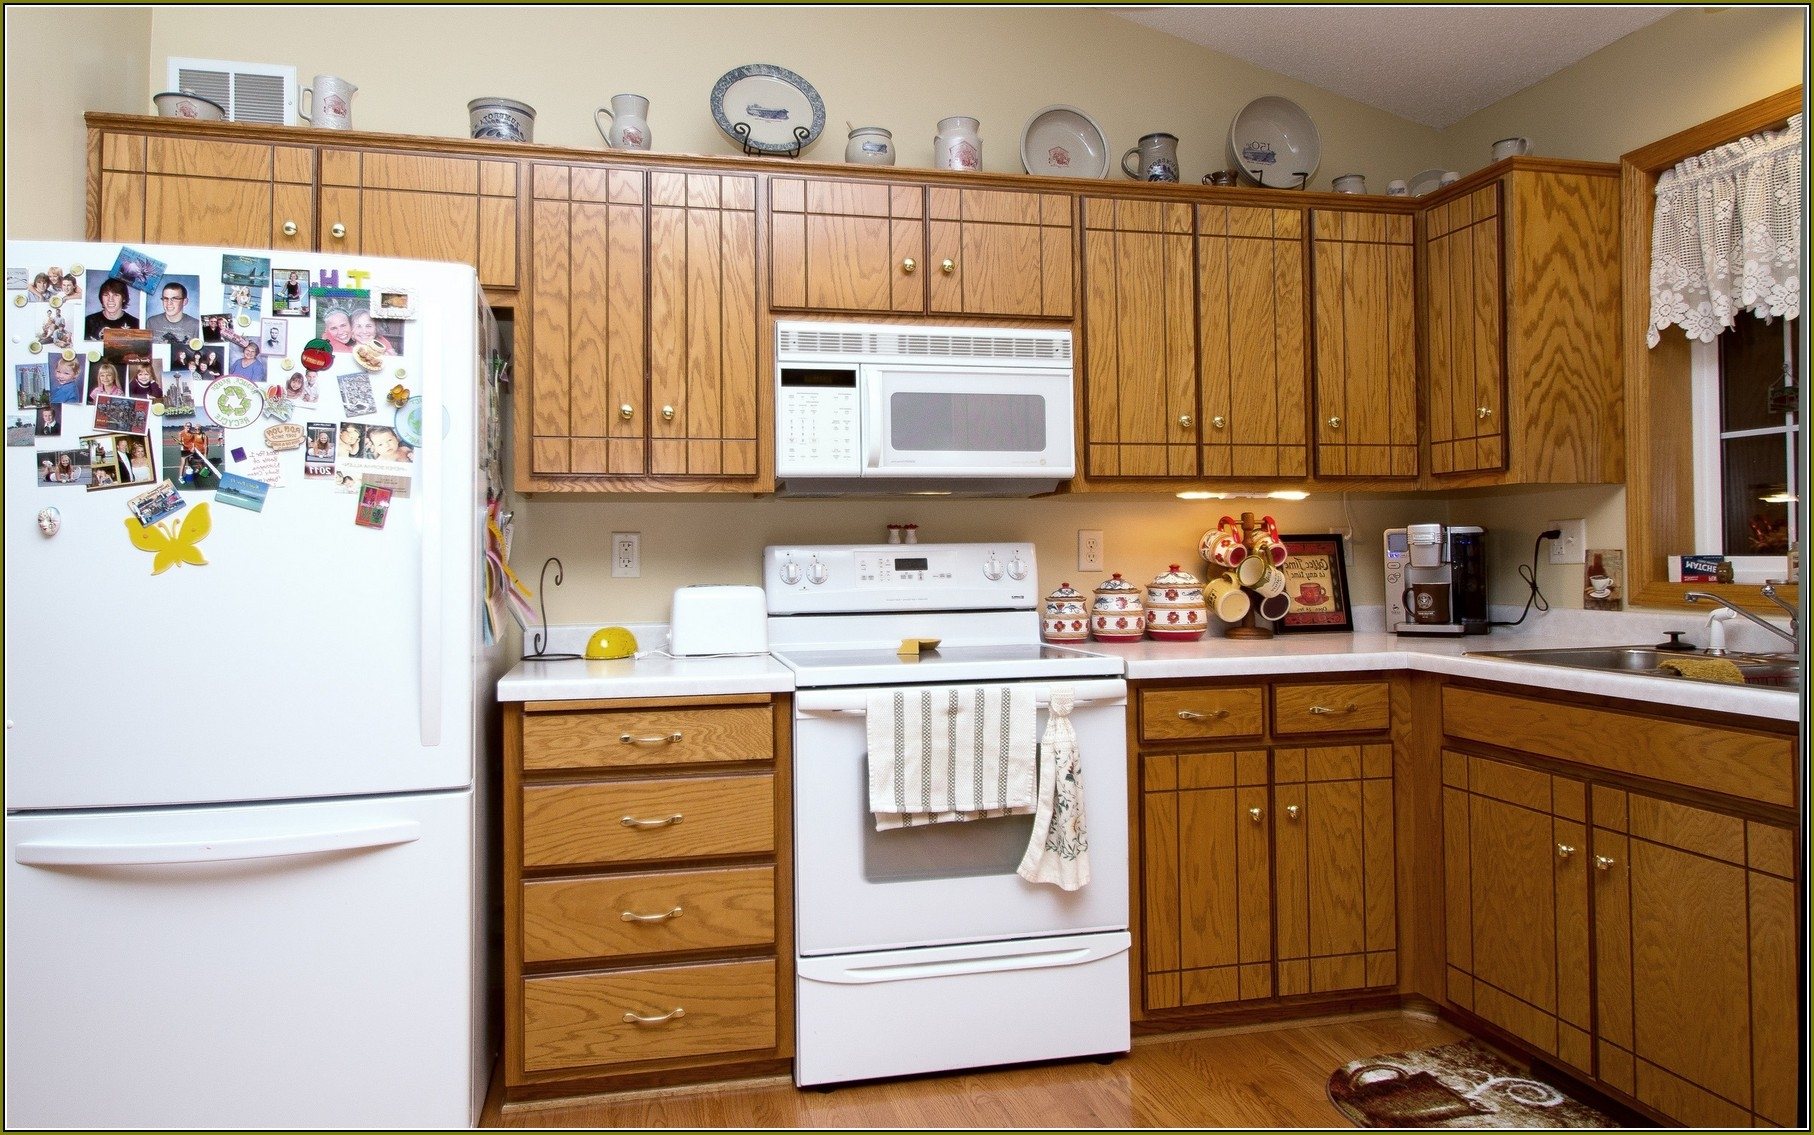 Types Of Material For Kitchen Cabinets1814 X 1135